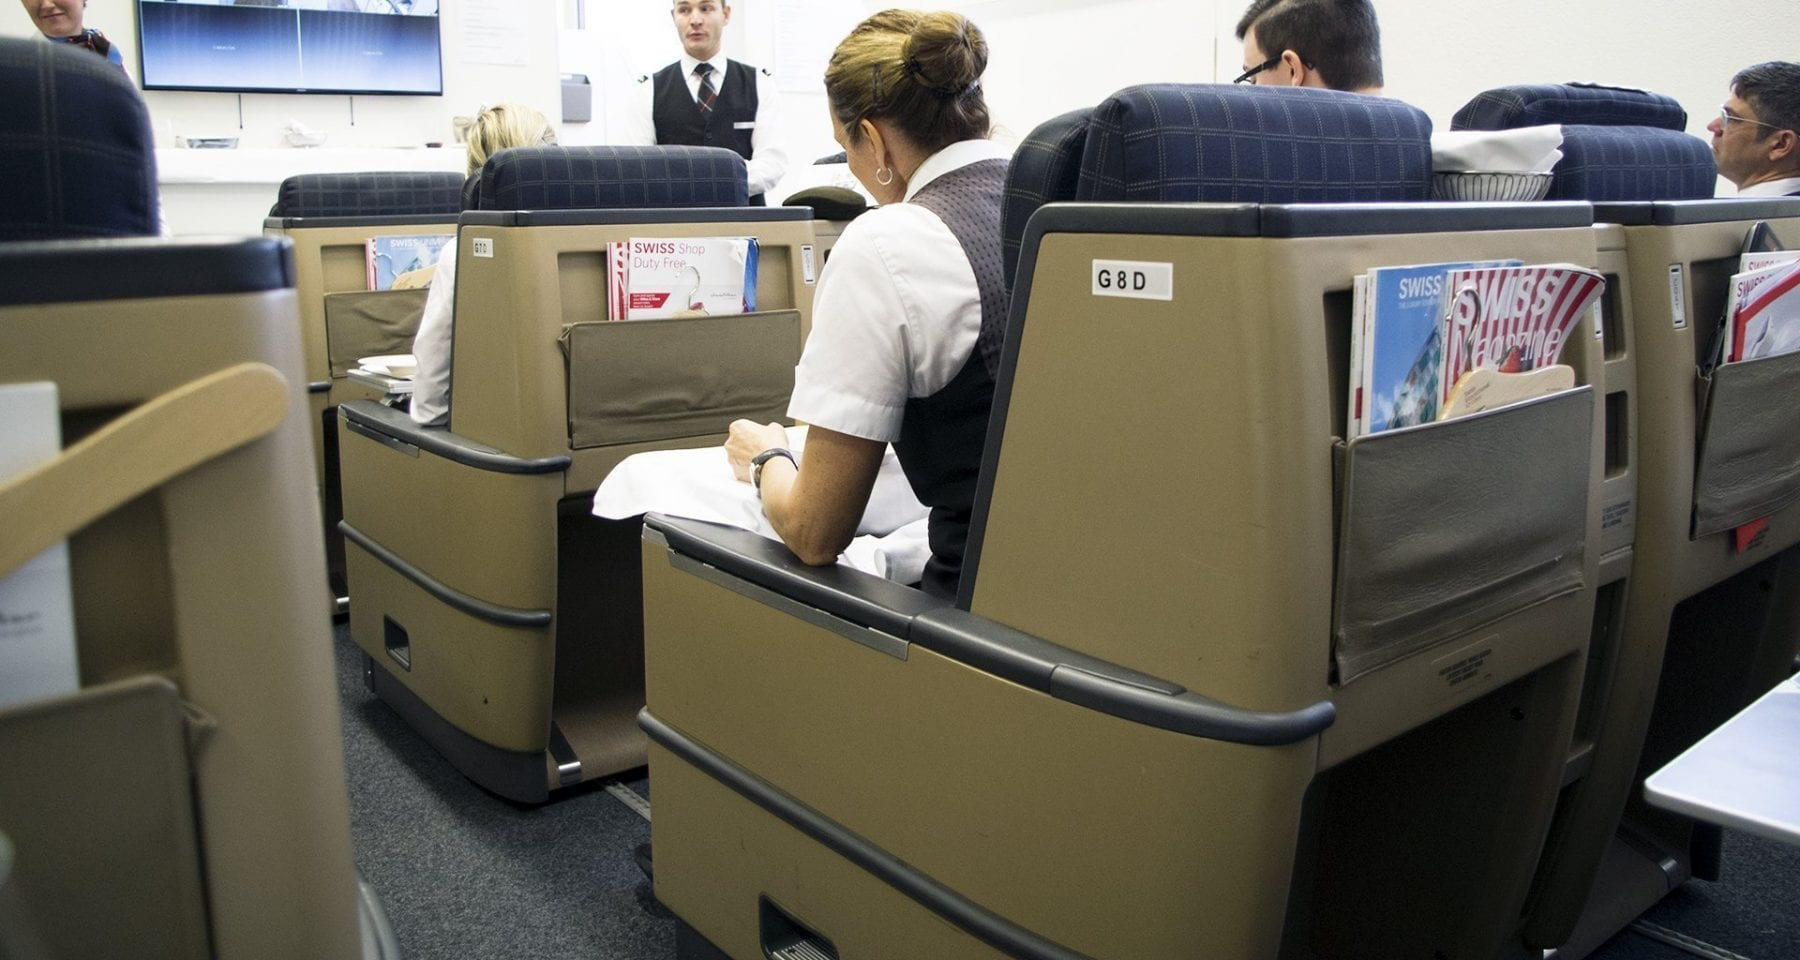 Swiss Airlines First Class Training